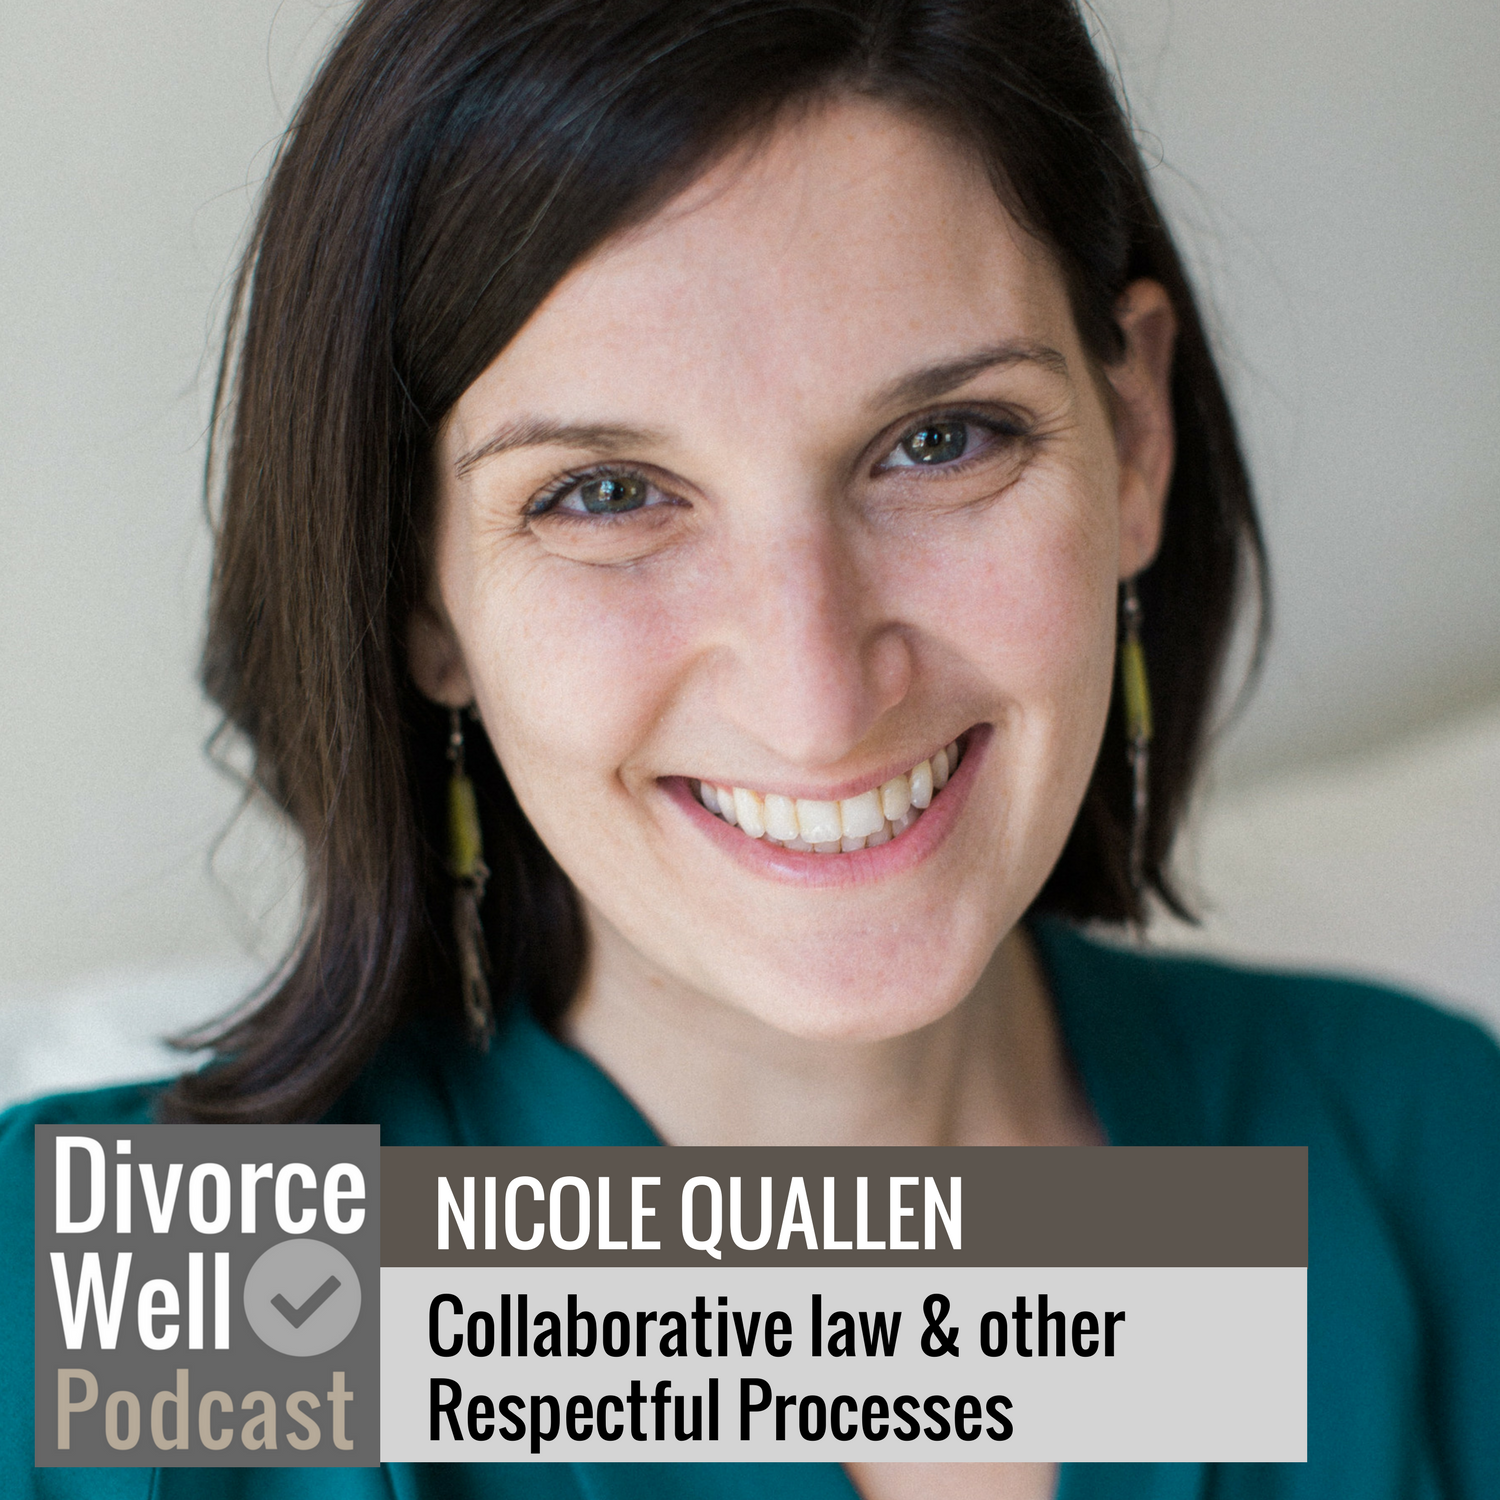 The Divorce Well Podcast - 10 - Collaborative law and other respectful processes, with Nicole Quallen